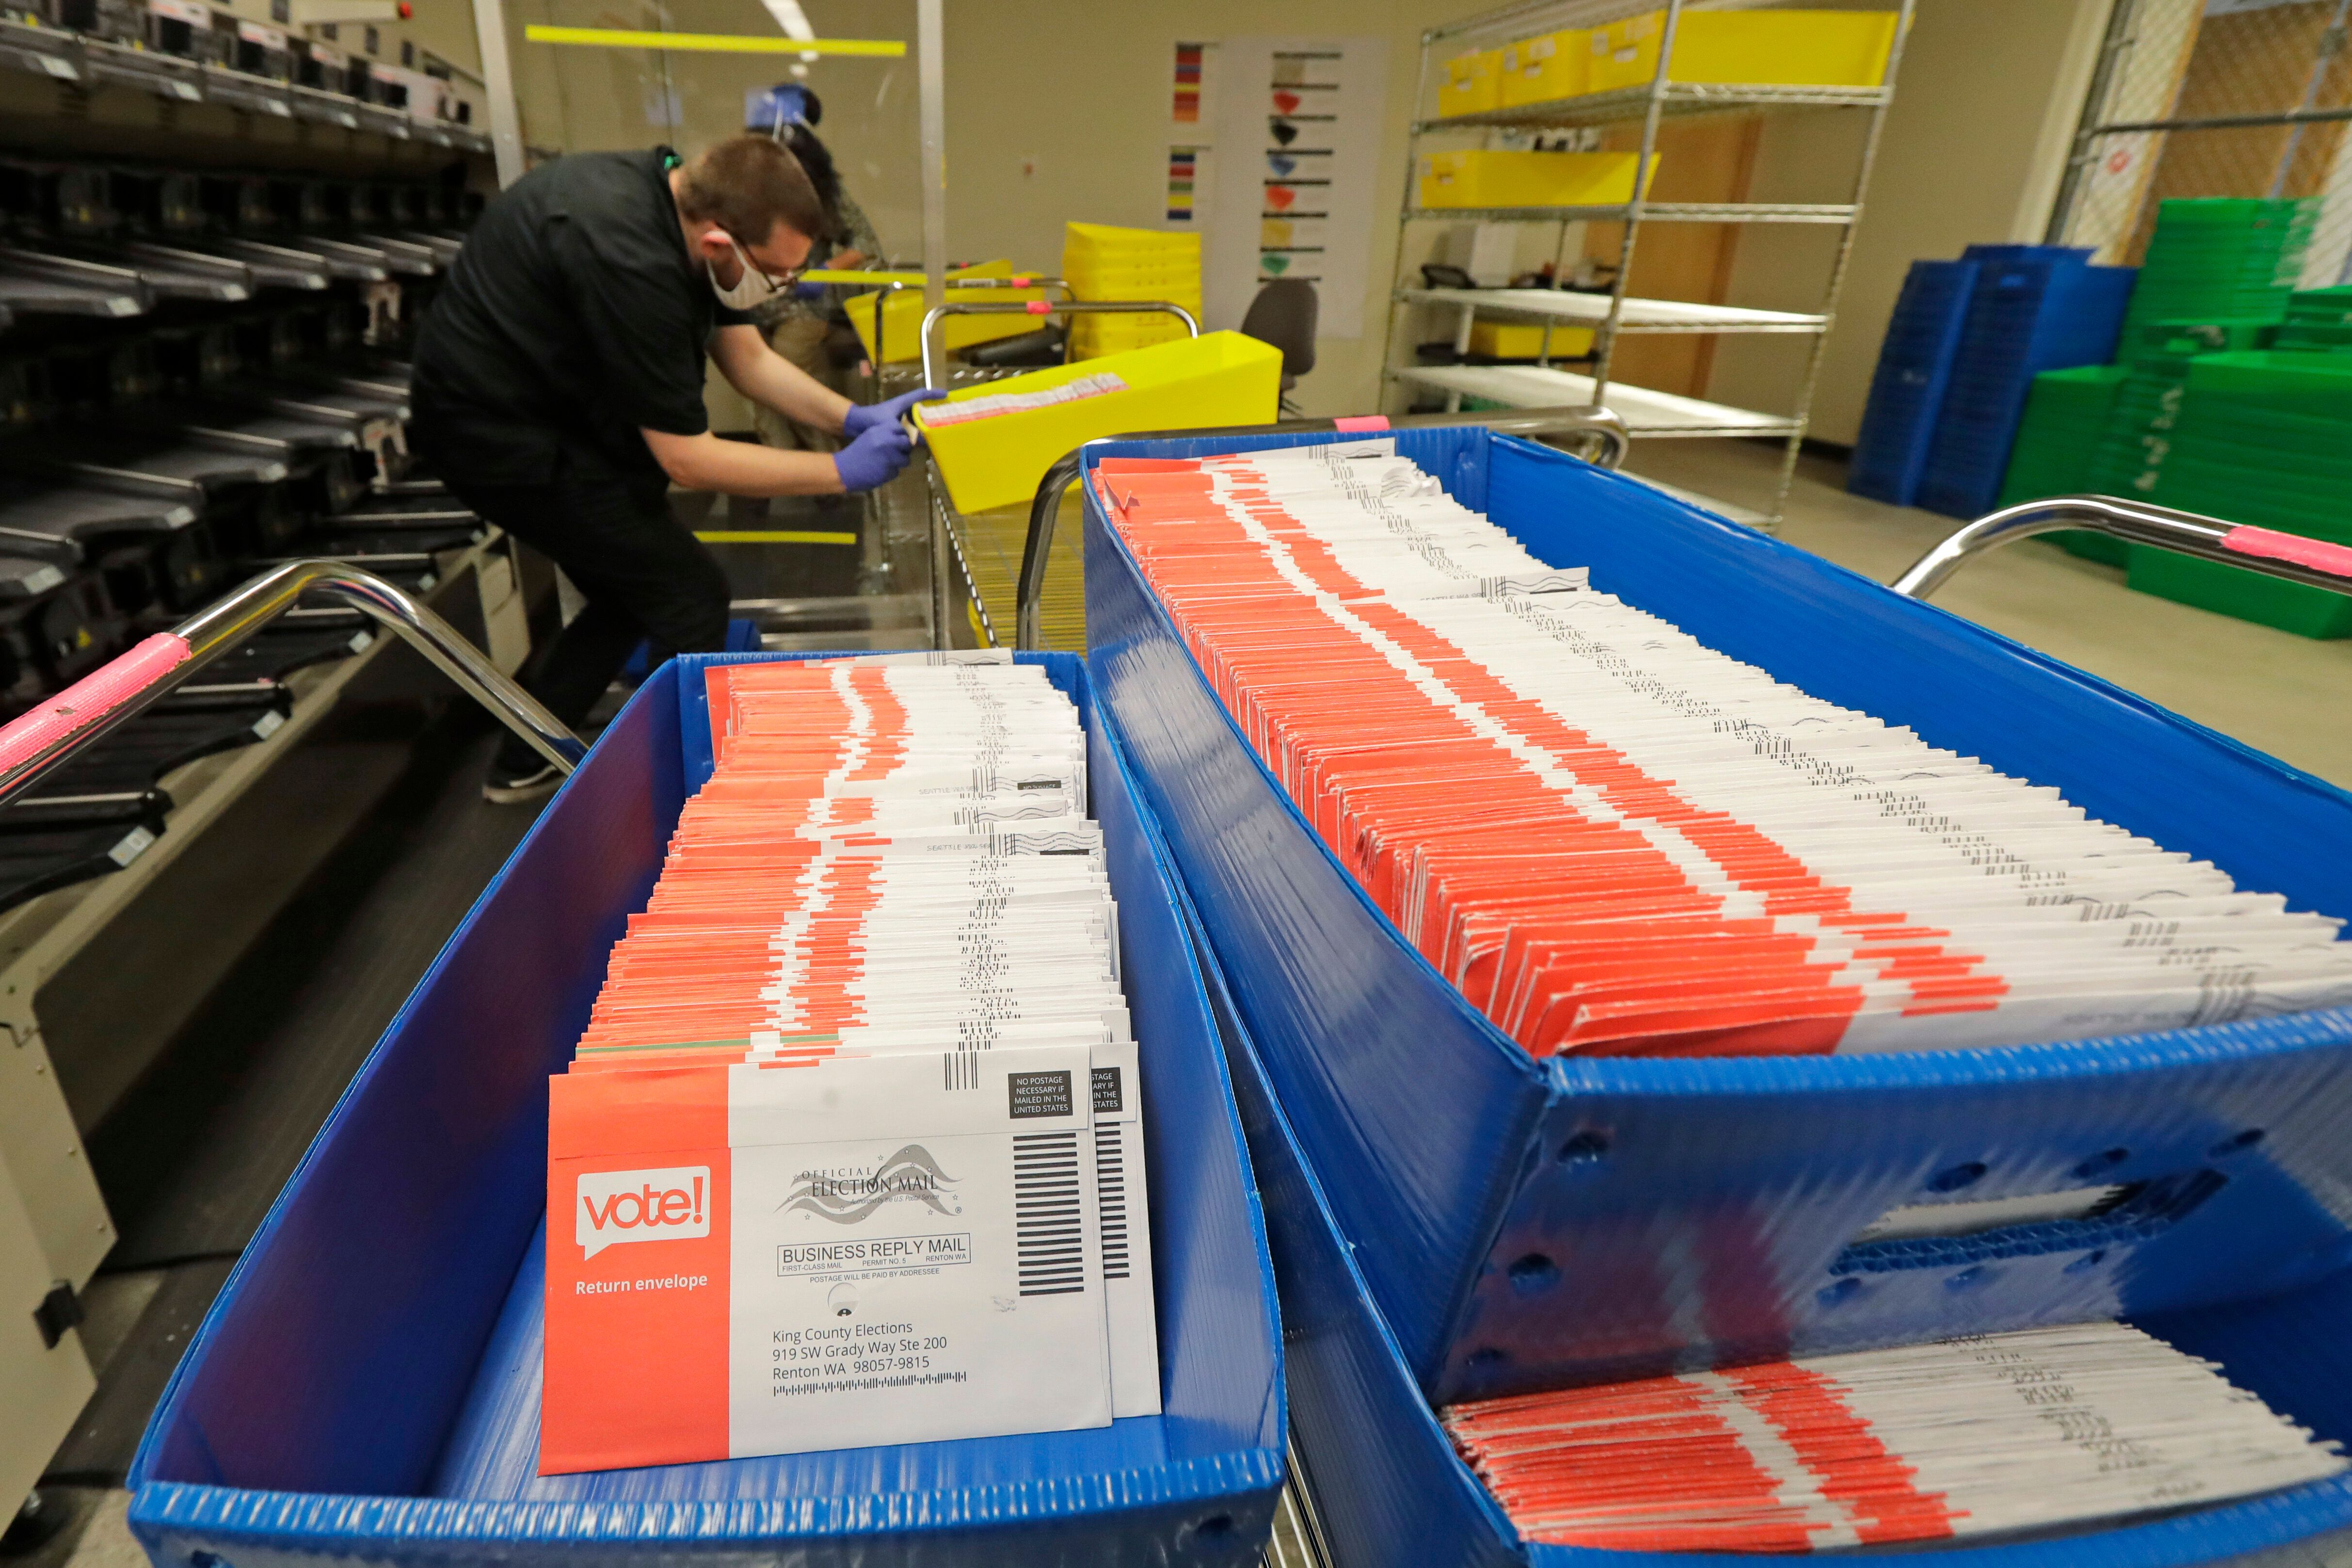 A record number of mailed absentee ballots are expected to be cast in the 2020 election. This could create the prelude to a c